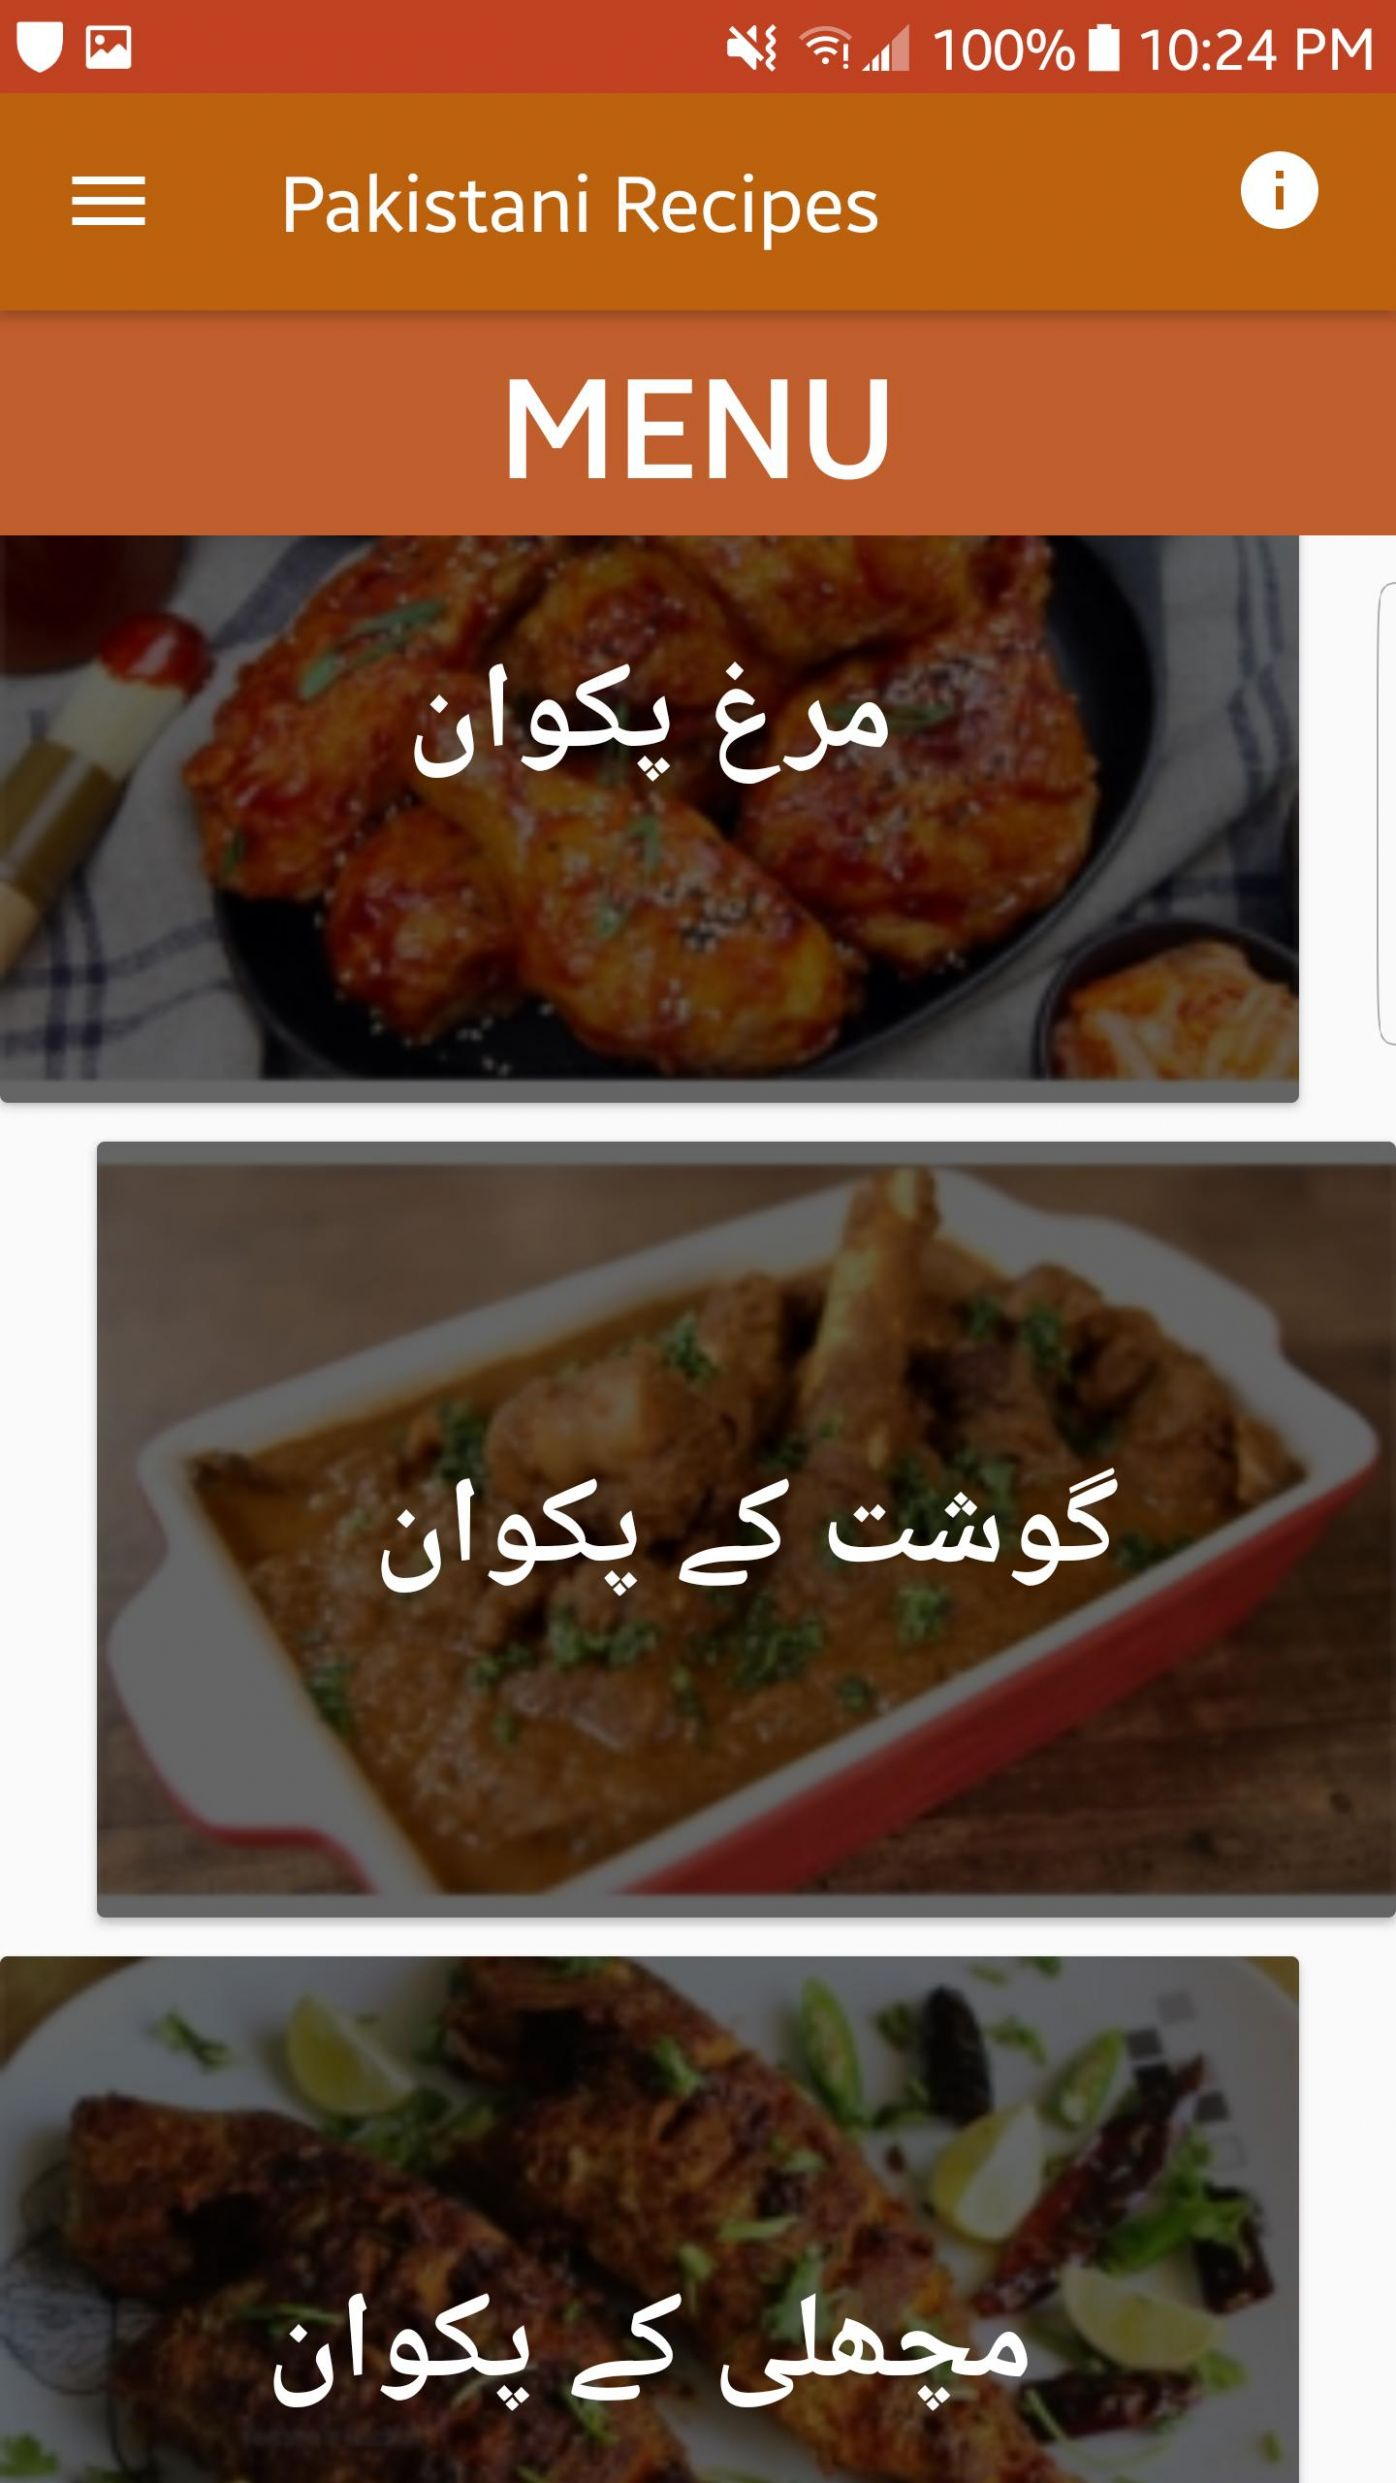 Pakistani Food Recipes in Urdu - Offline für Android - APK ...